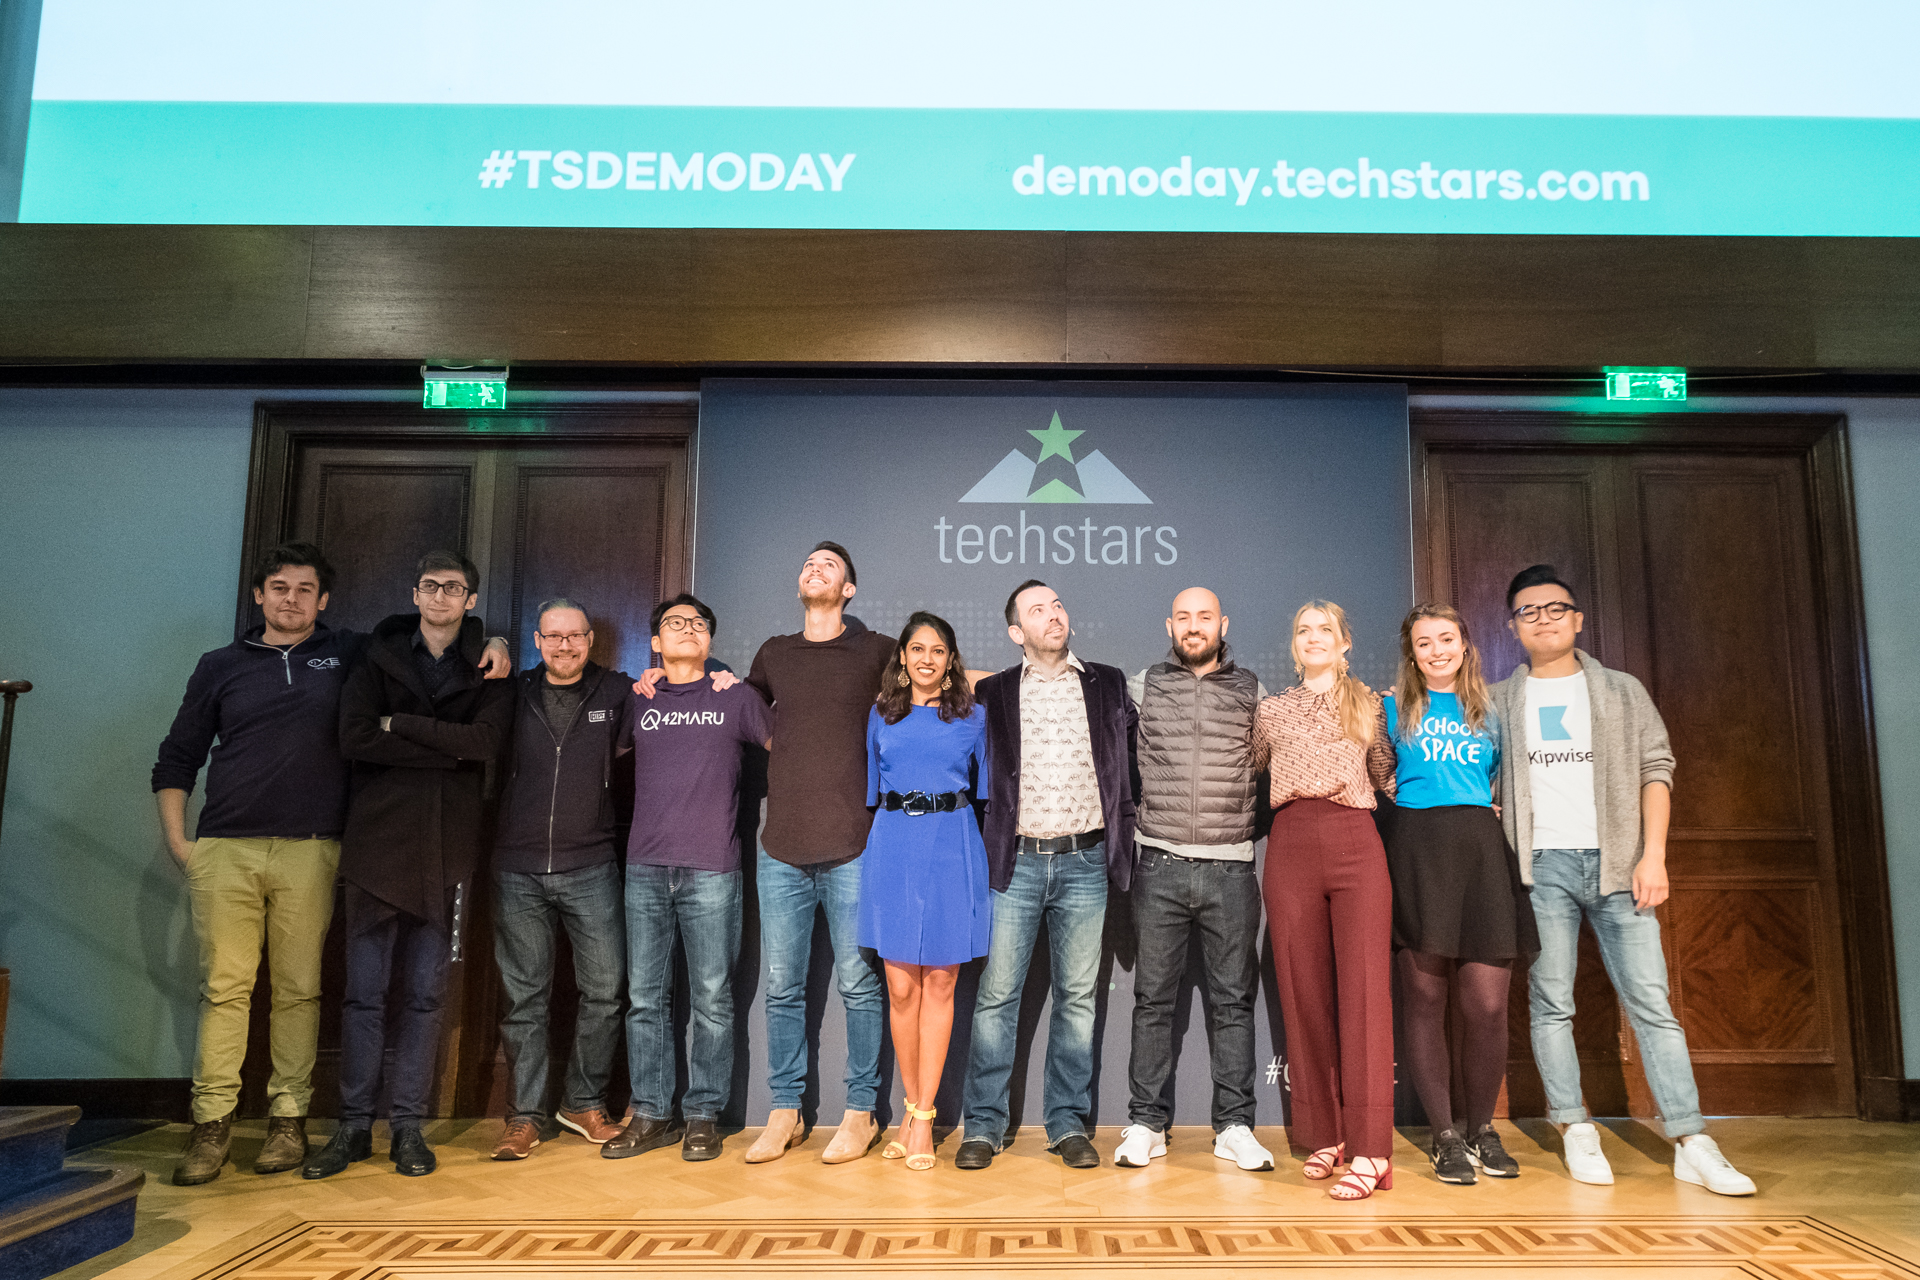 Techstars London 2018 Demo Day